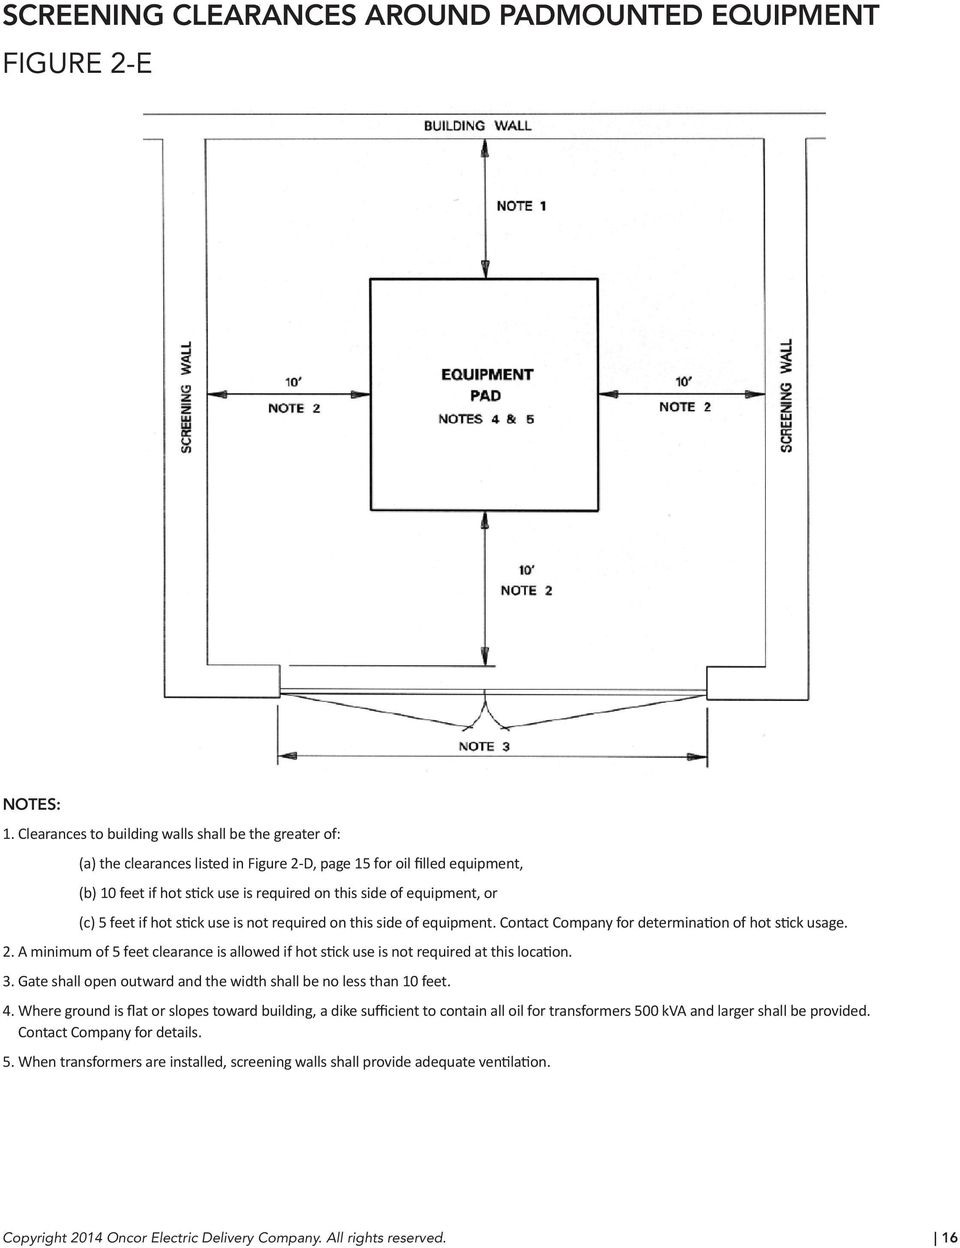 Meter Loop Diagram Online Schematics Oilfield Wiring Diagrams For Oncor Trusted Mobile Home Electrical Service Electric Guidelines